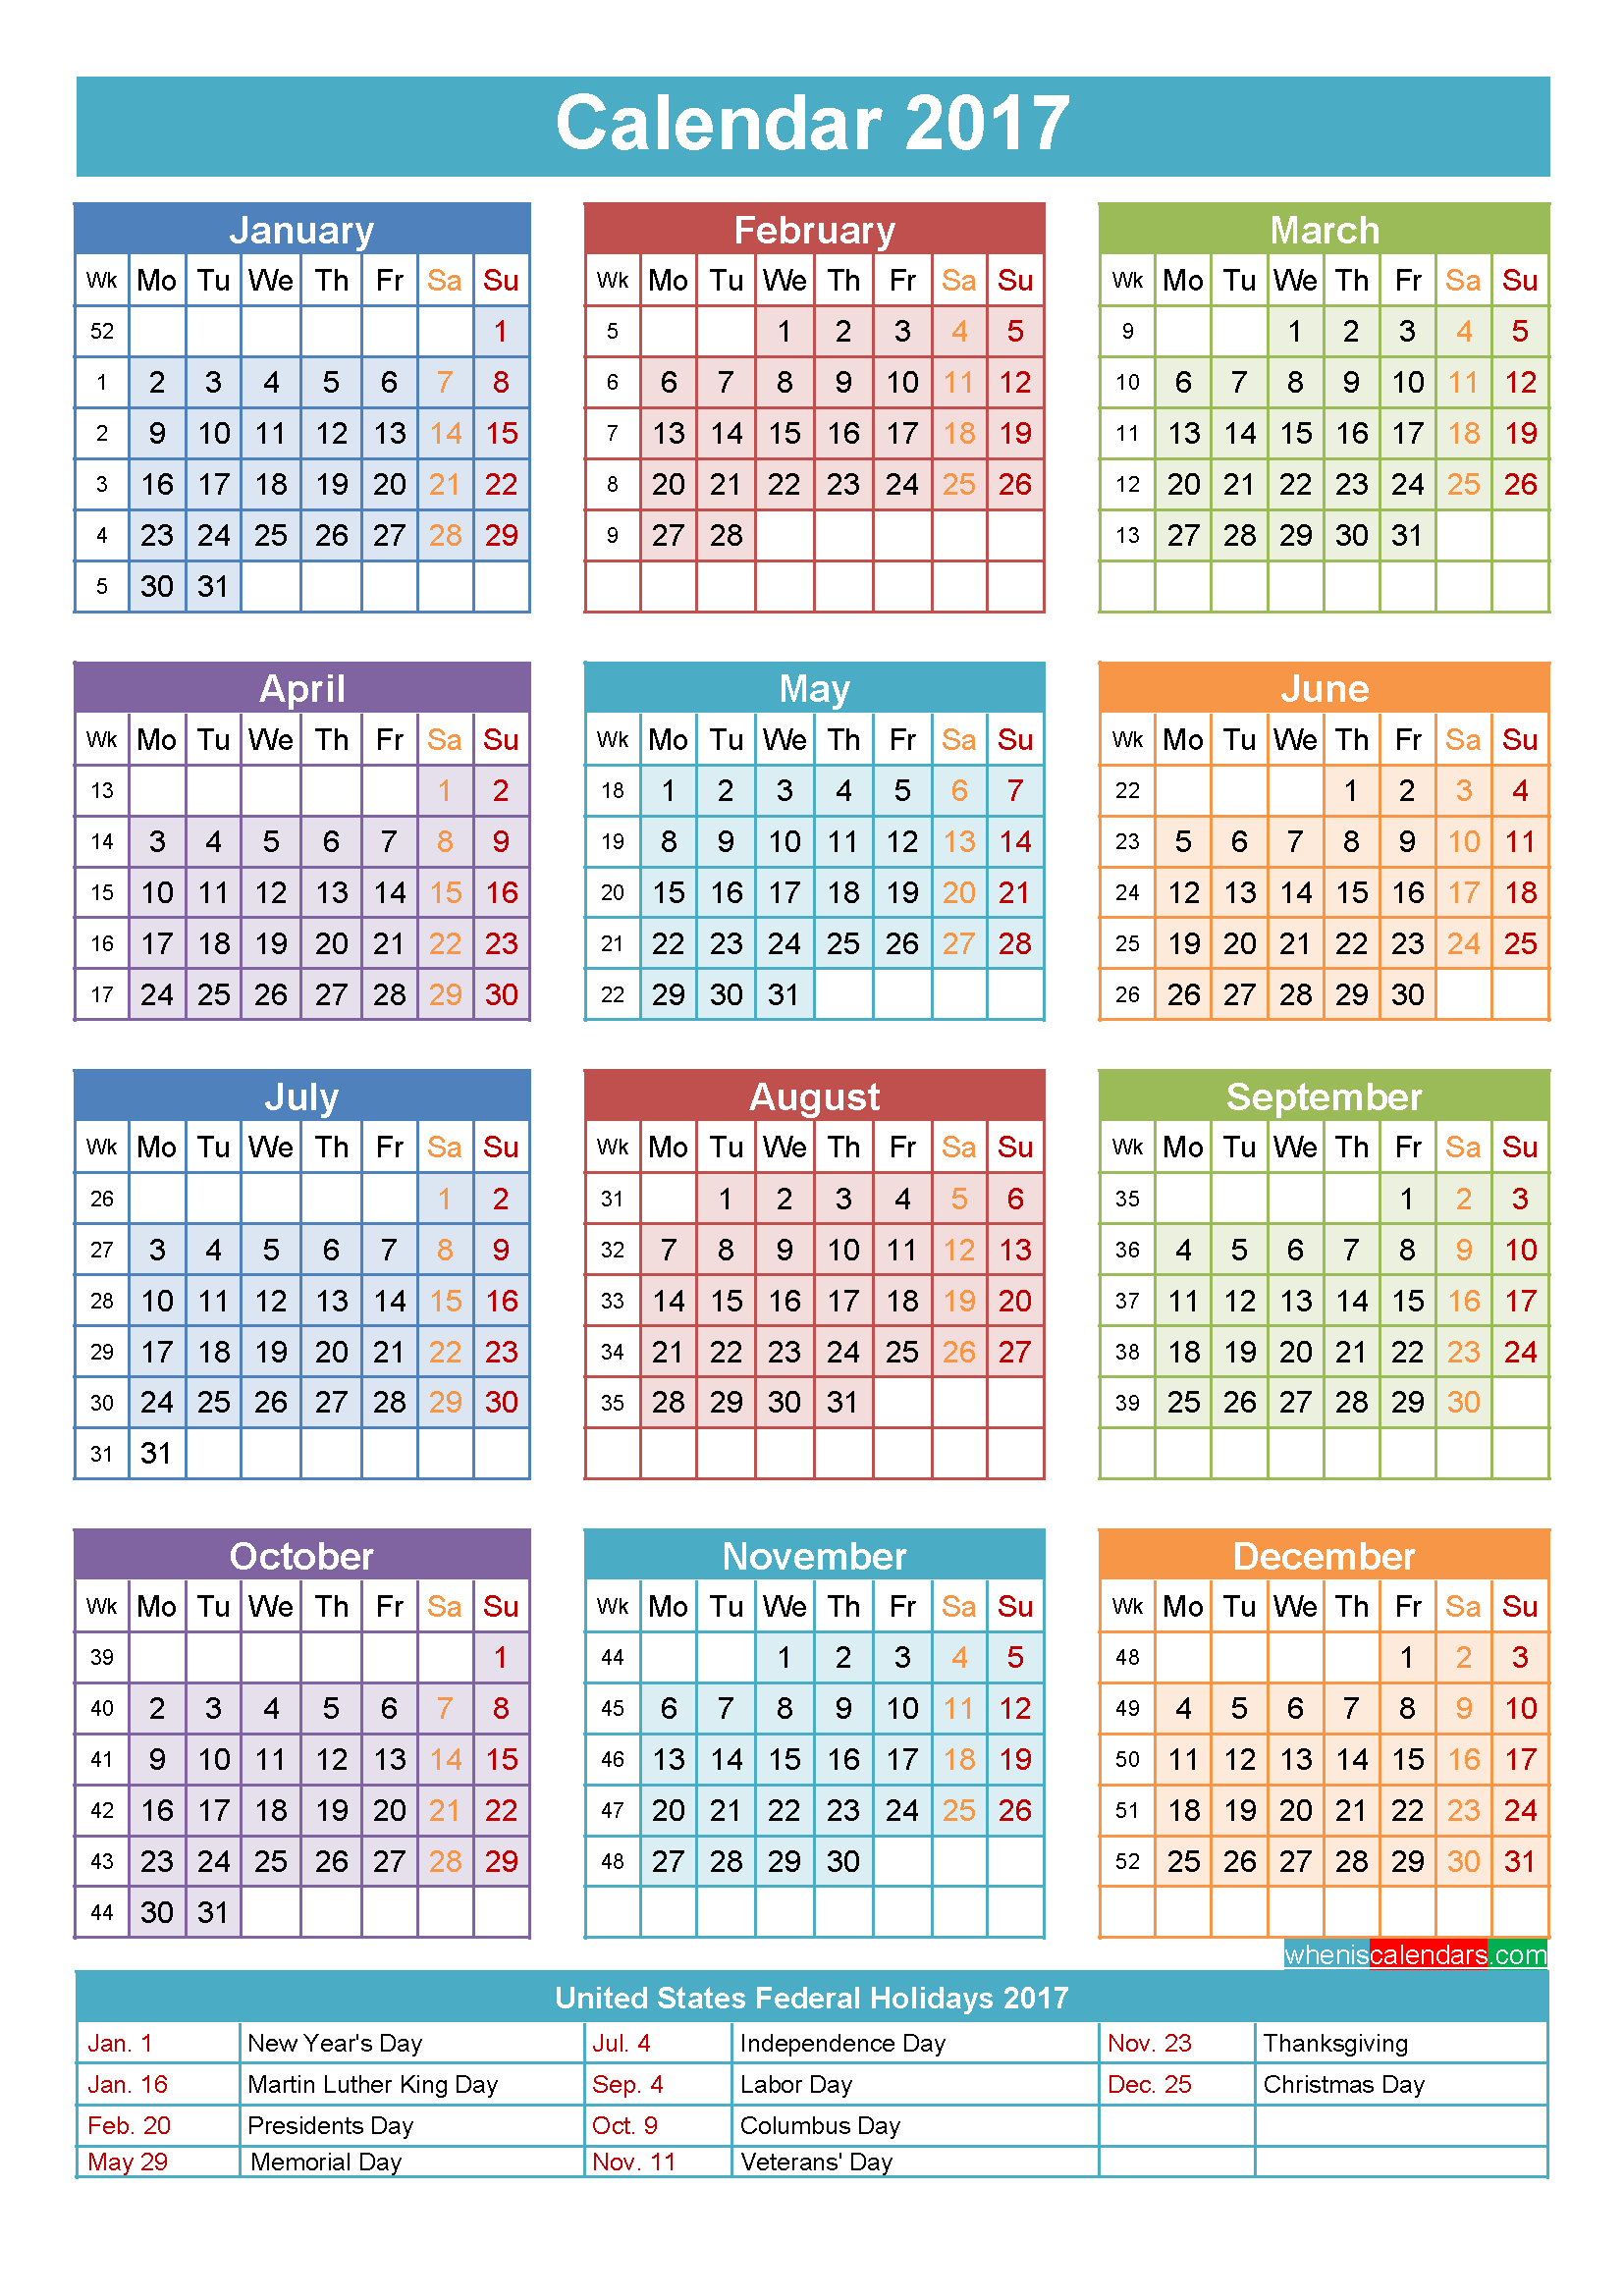 Calendar Worksheet Pdf : Calendar with holidays printable yearly